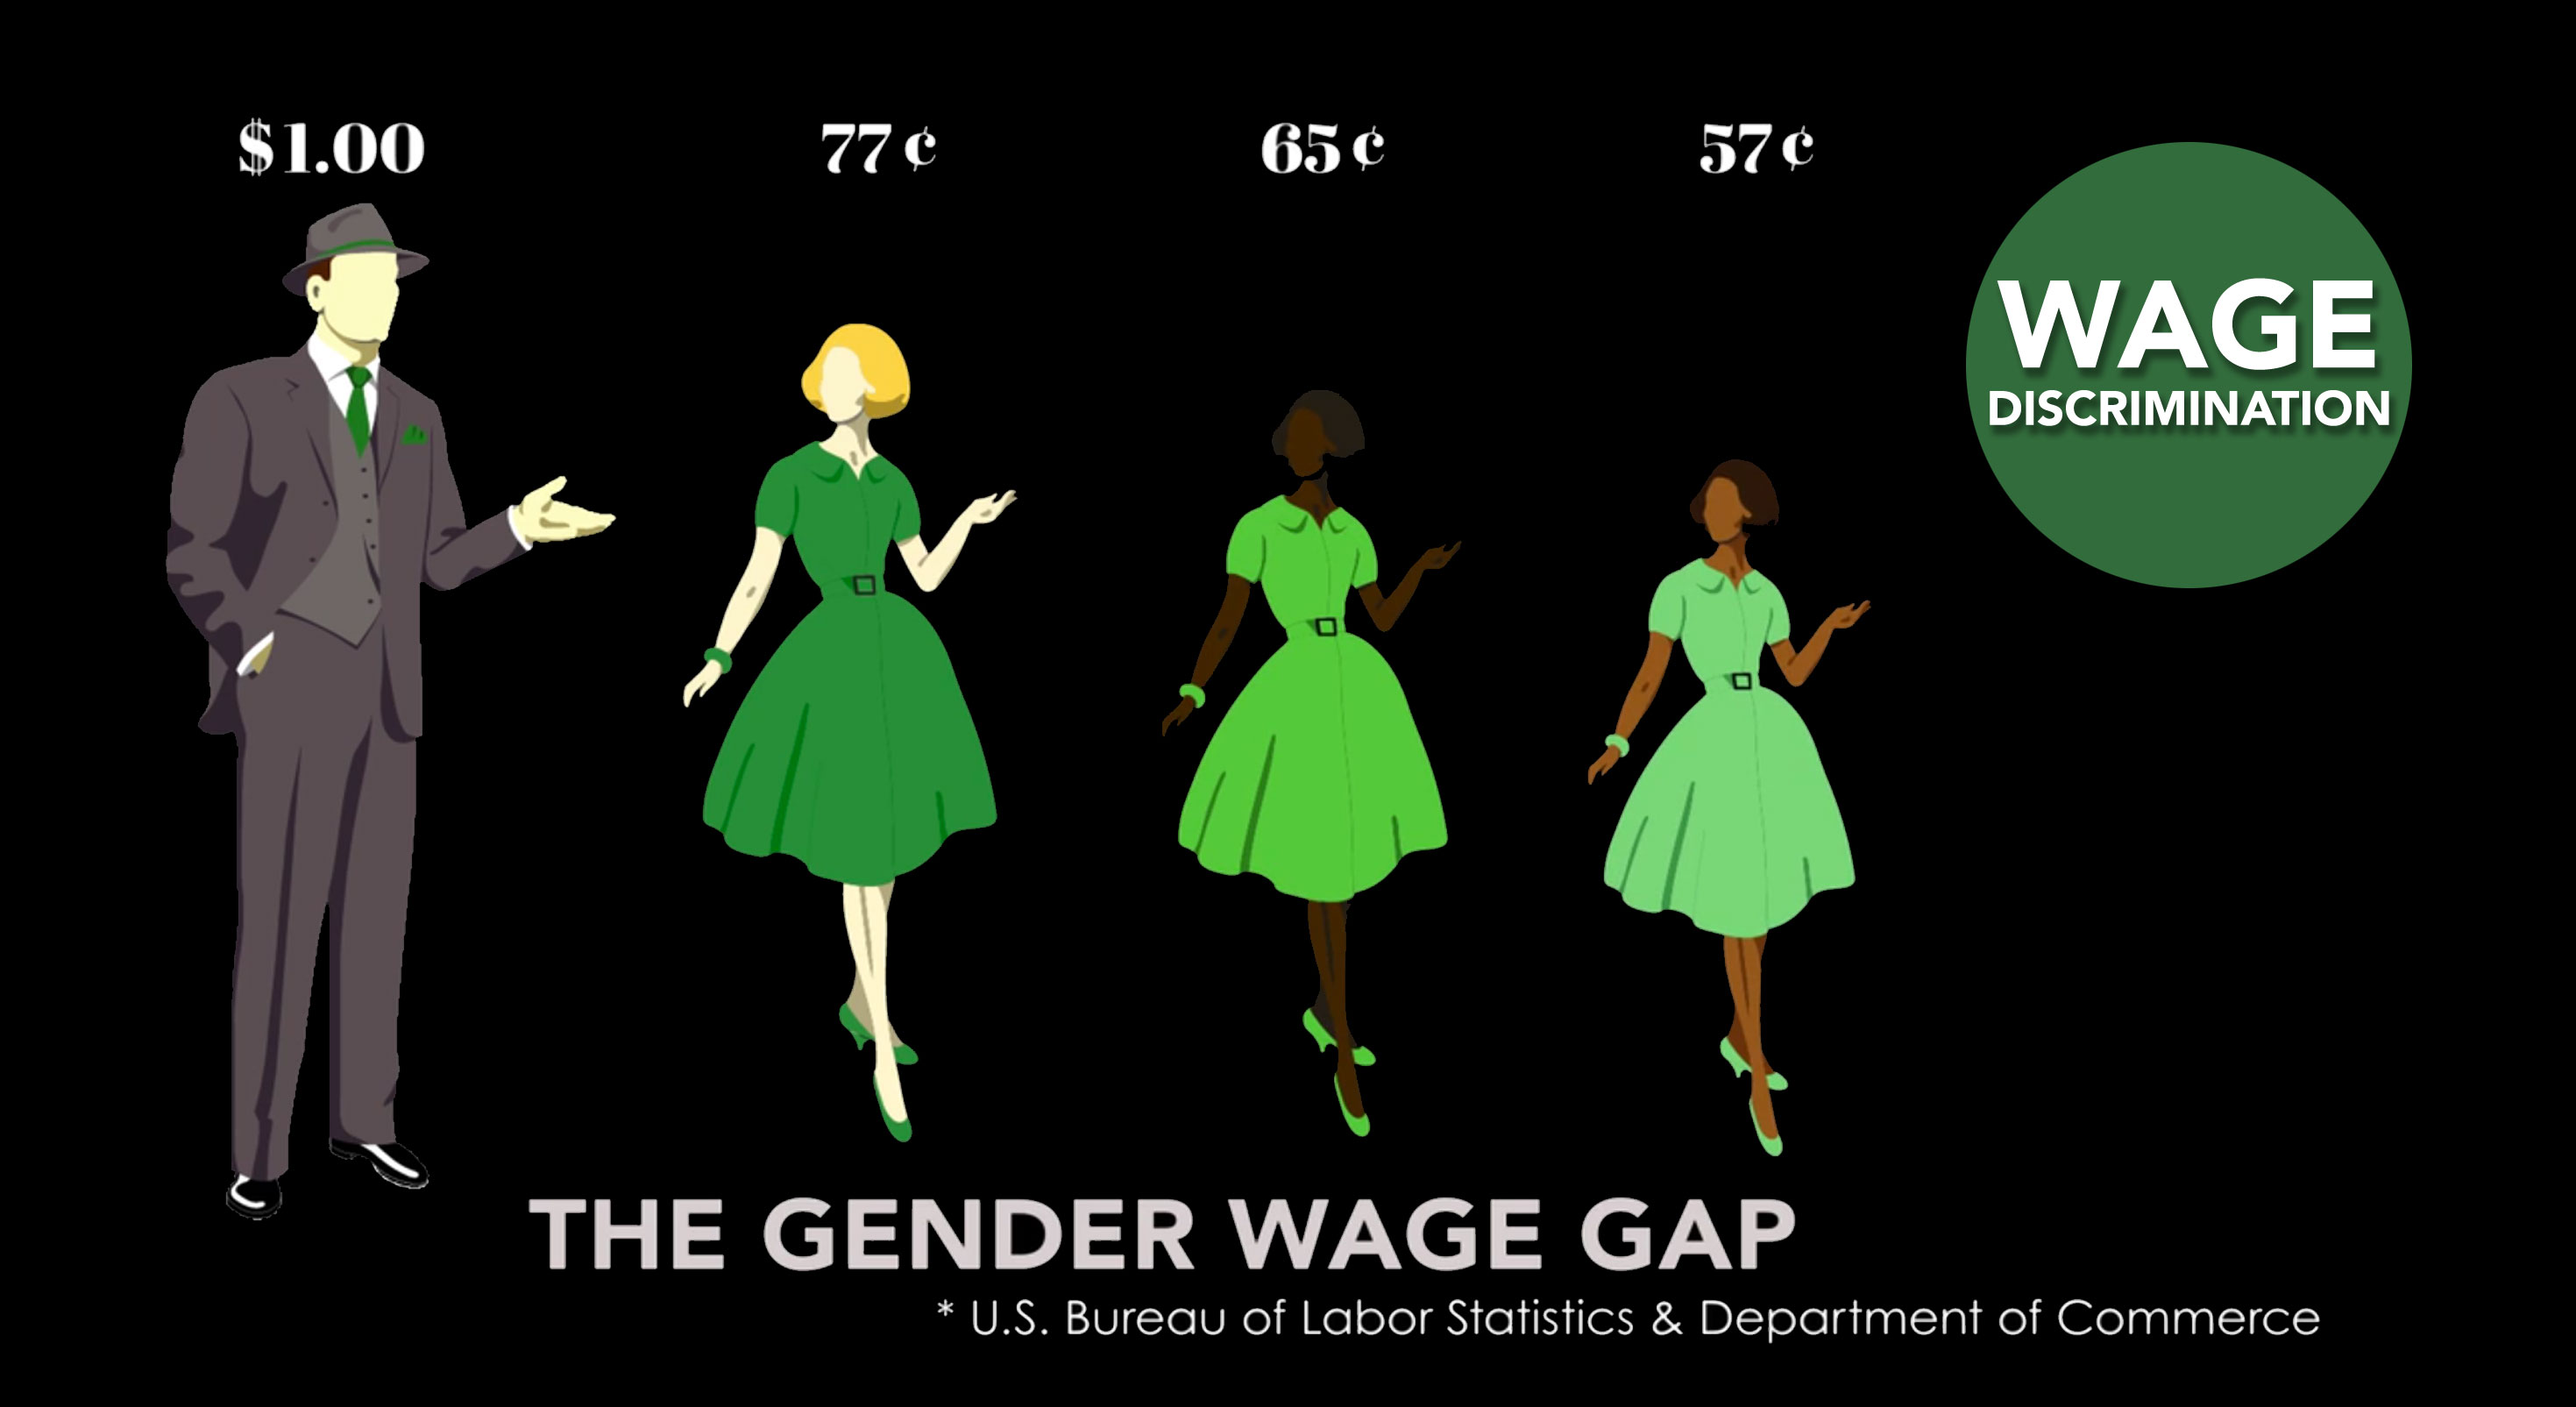 the gender income gap The gender income gap in 2017 download image download data embed chart gl gideon lichfield, senior editor, quartz last updated: 4 months ago.